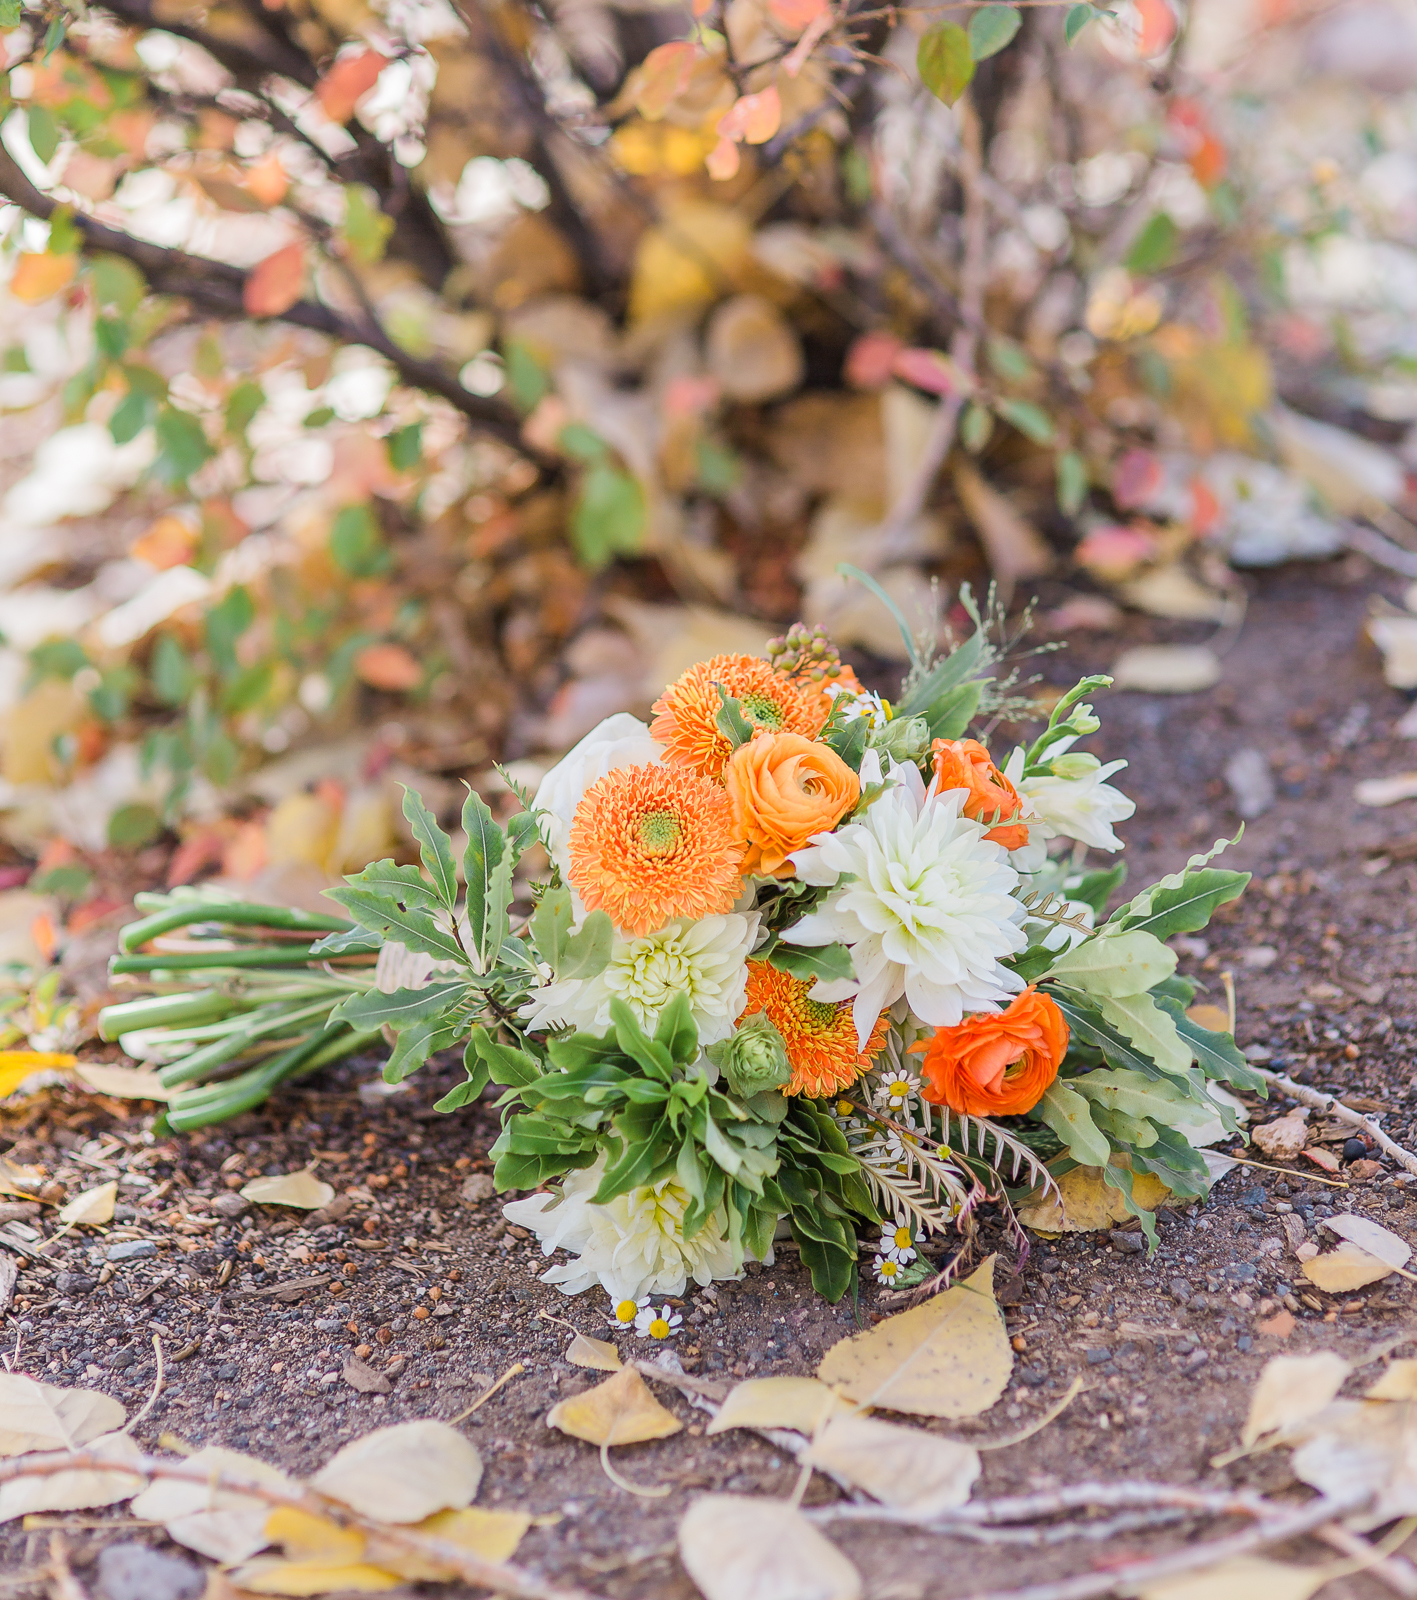 This casual elopement bouquet from Poppys features hops flowers and fall tones, perfect for this beer-loving couple's fall elopement.